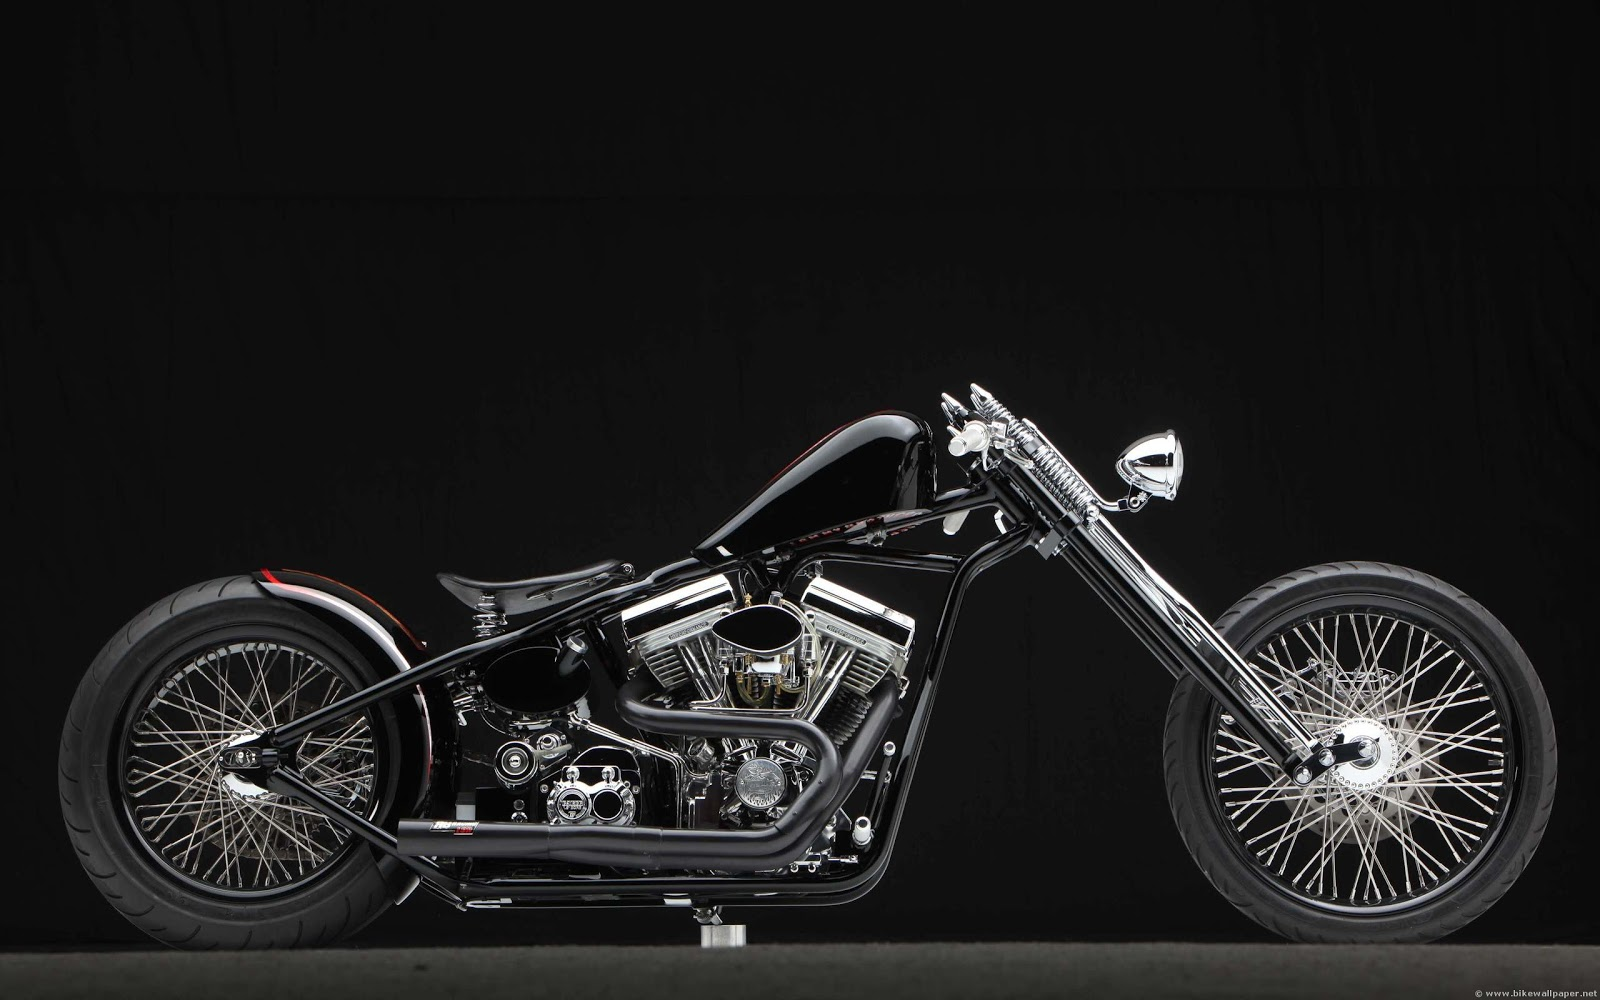 Desktop Wallpapers: American Choppers